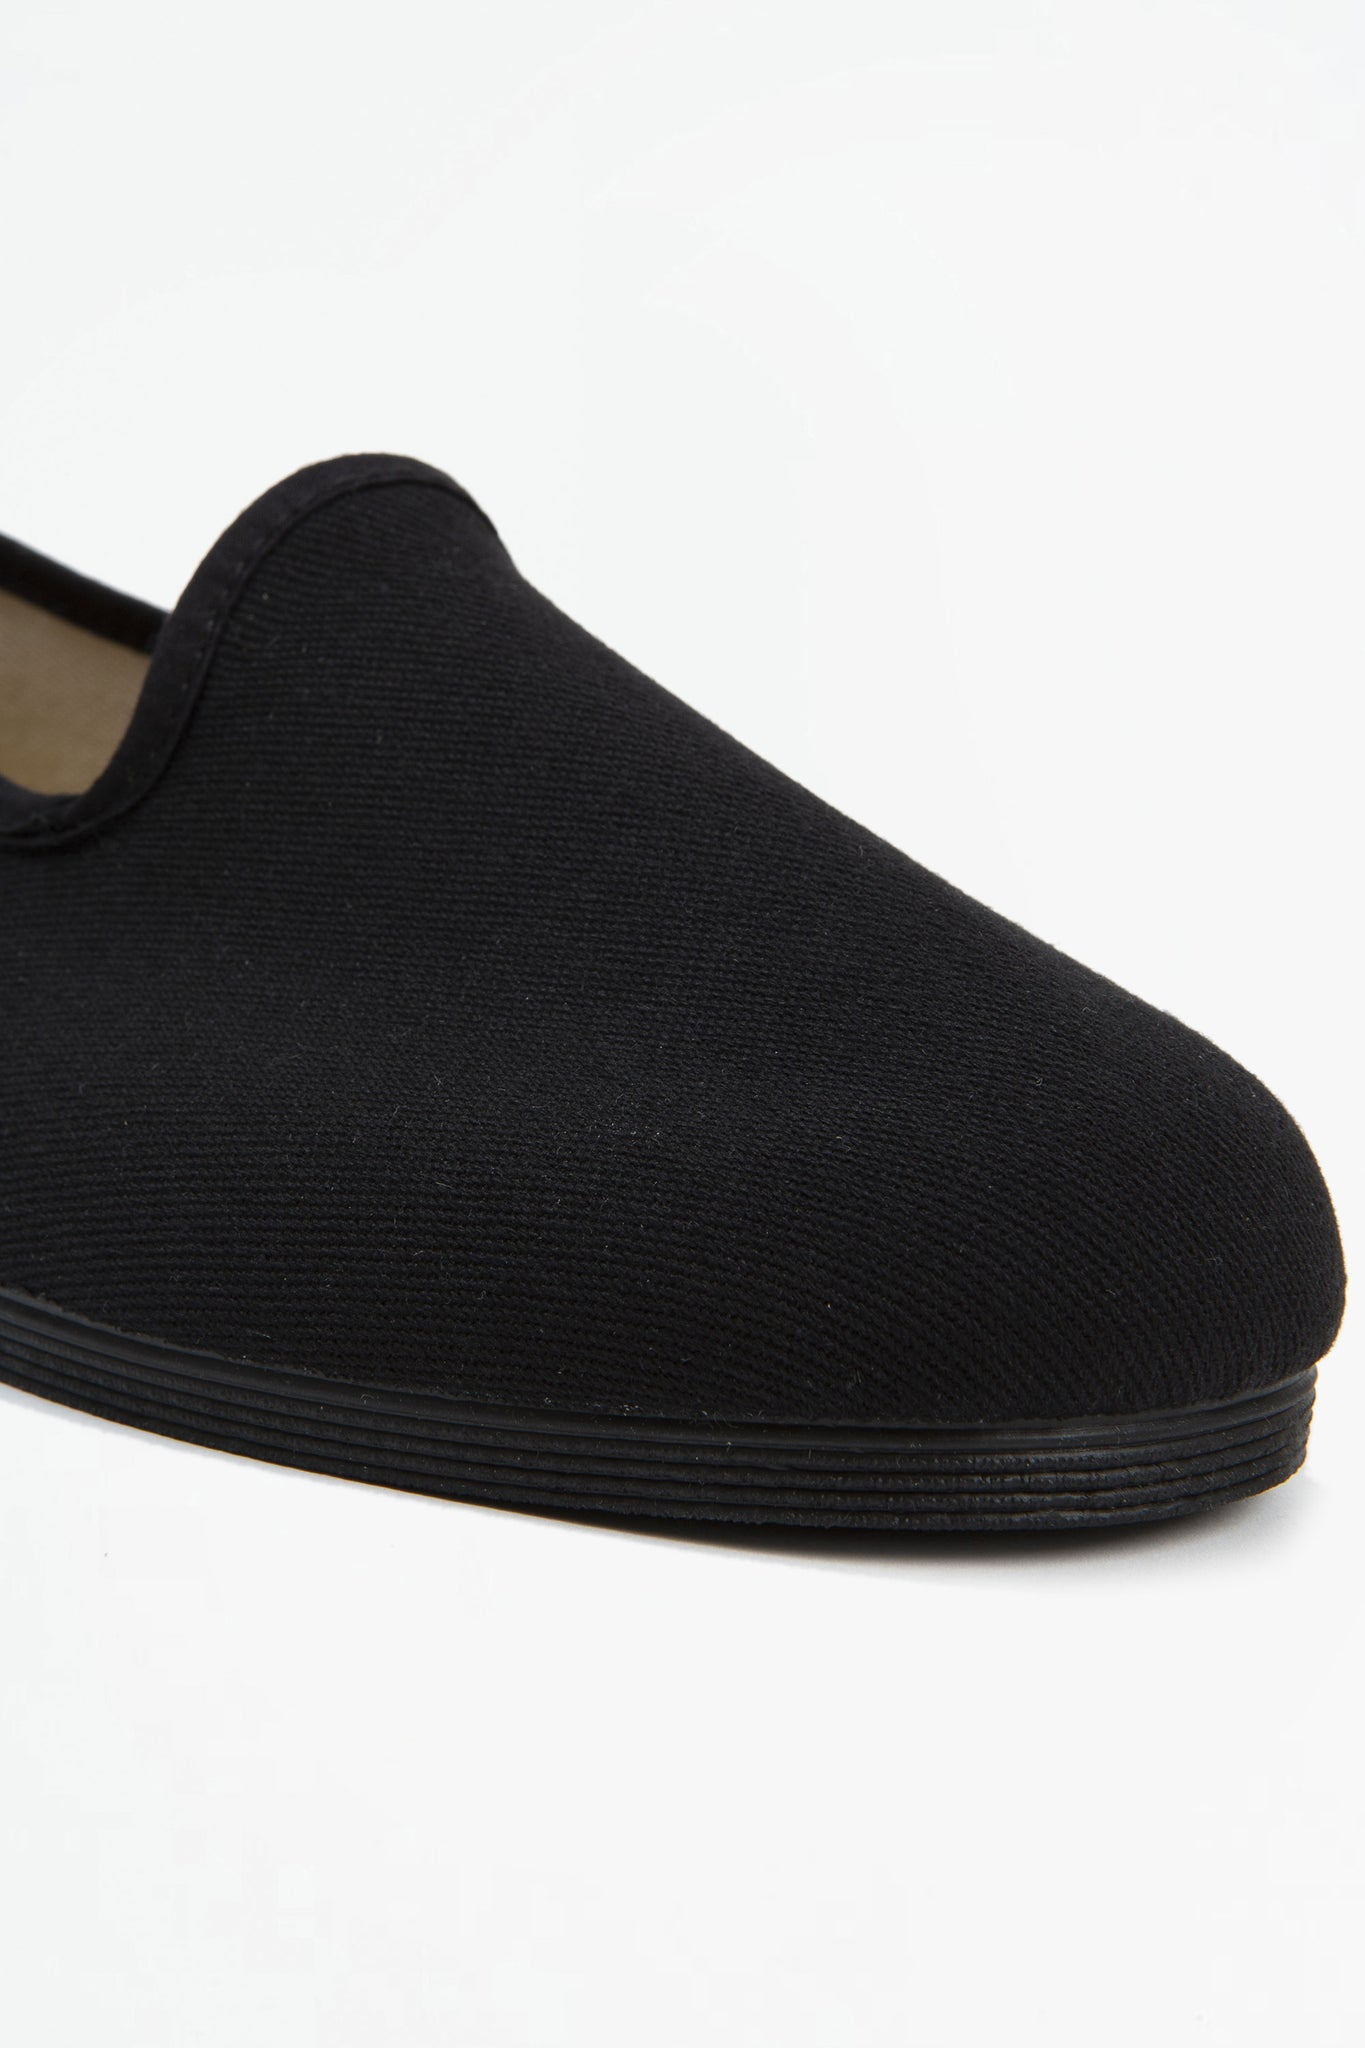 Slipper Sigma black cotton